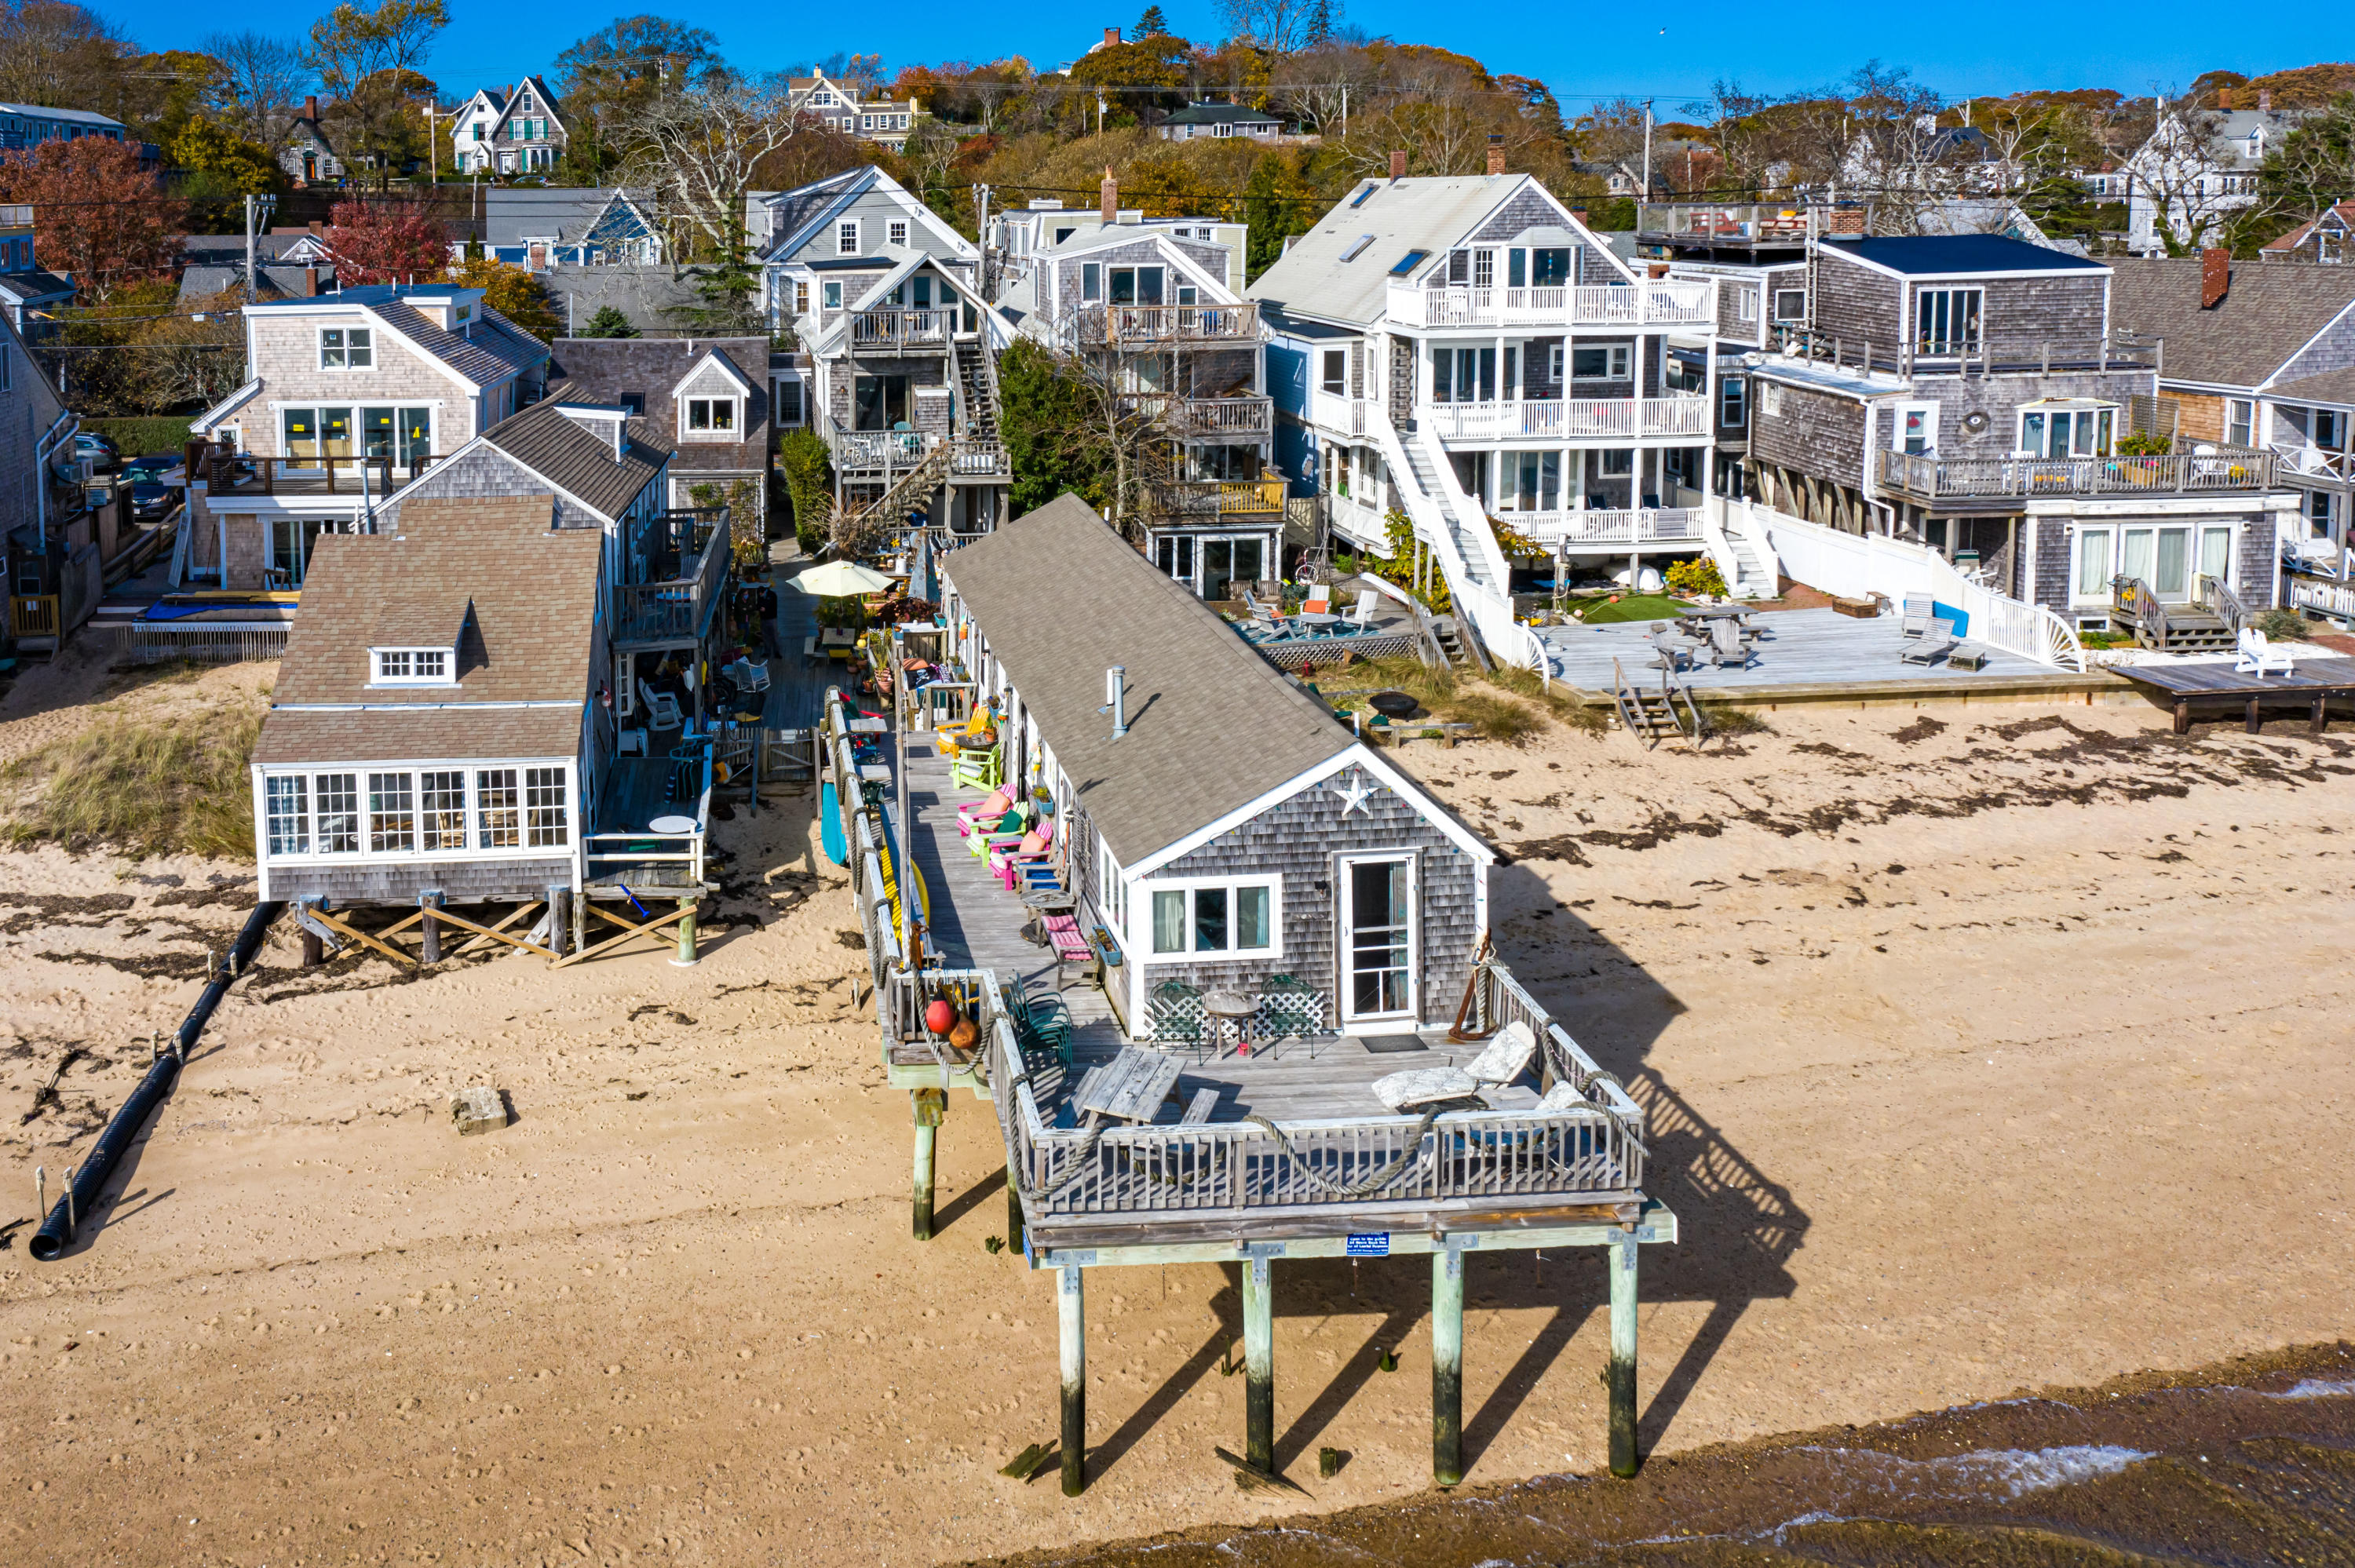 437 Commercial Street, Provincetown MA, 02657 details